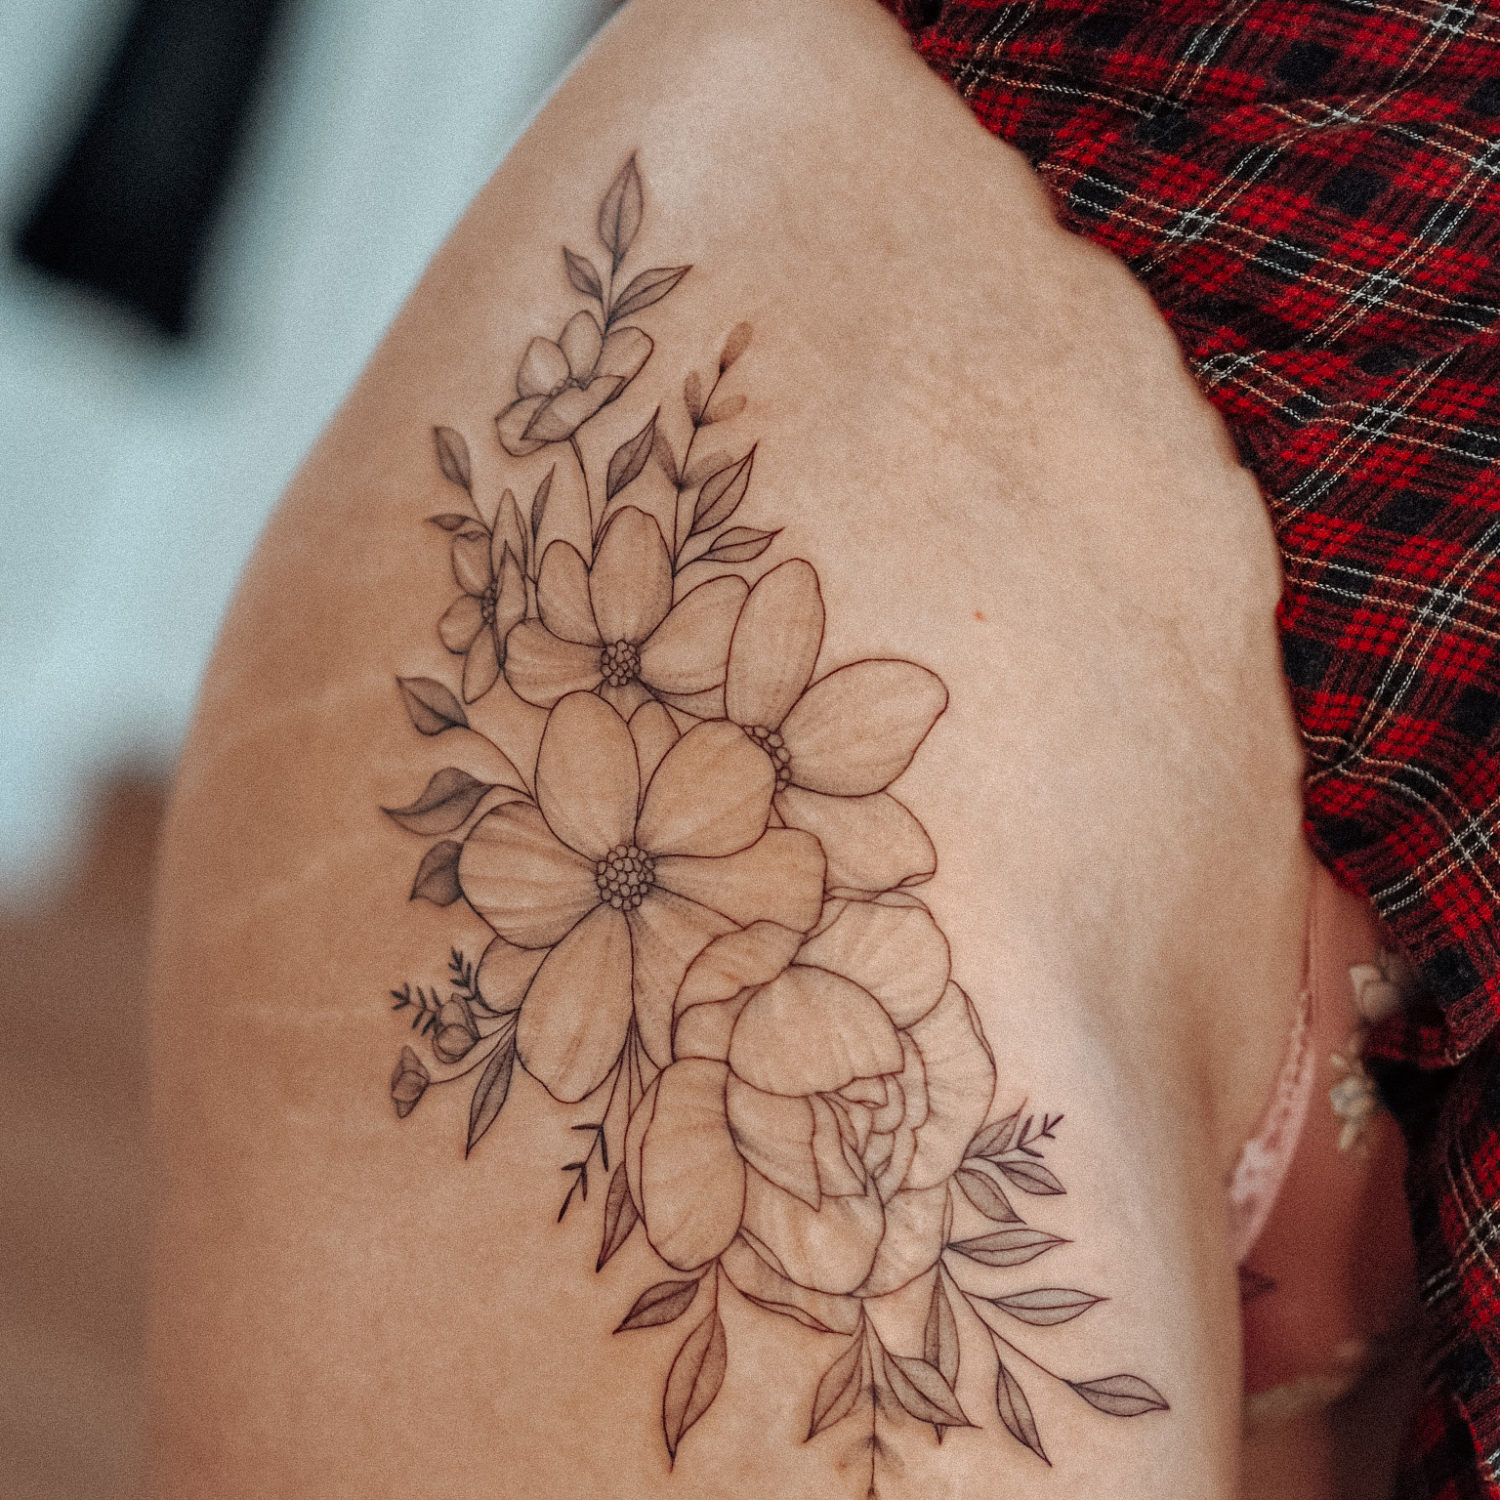 Big flowers fineline tattoo